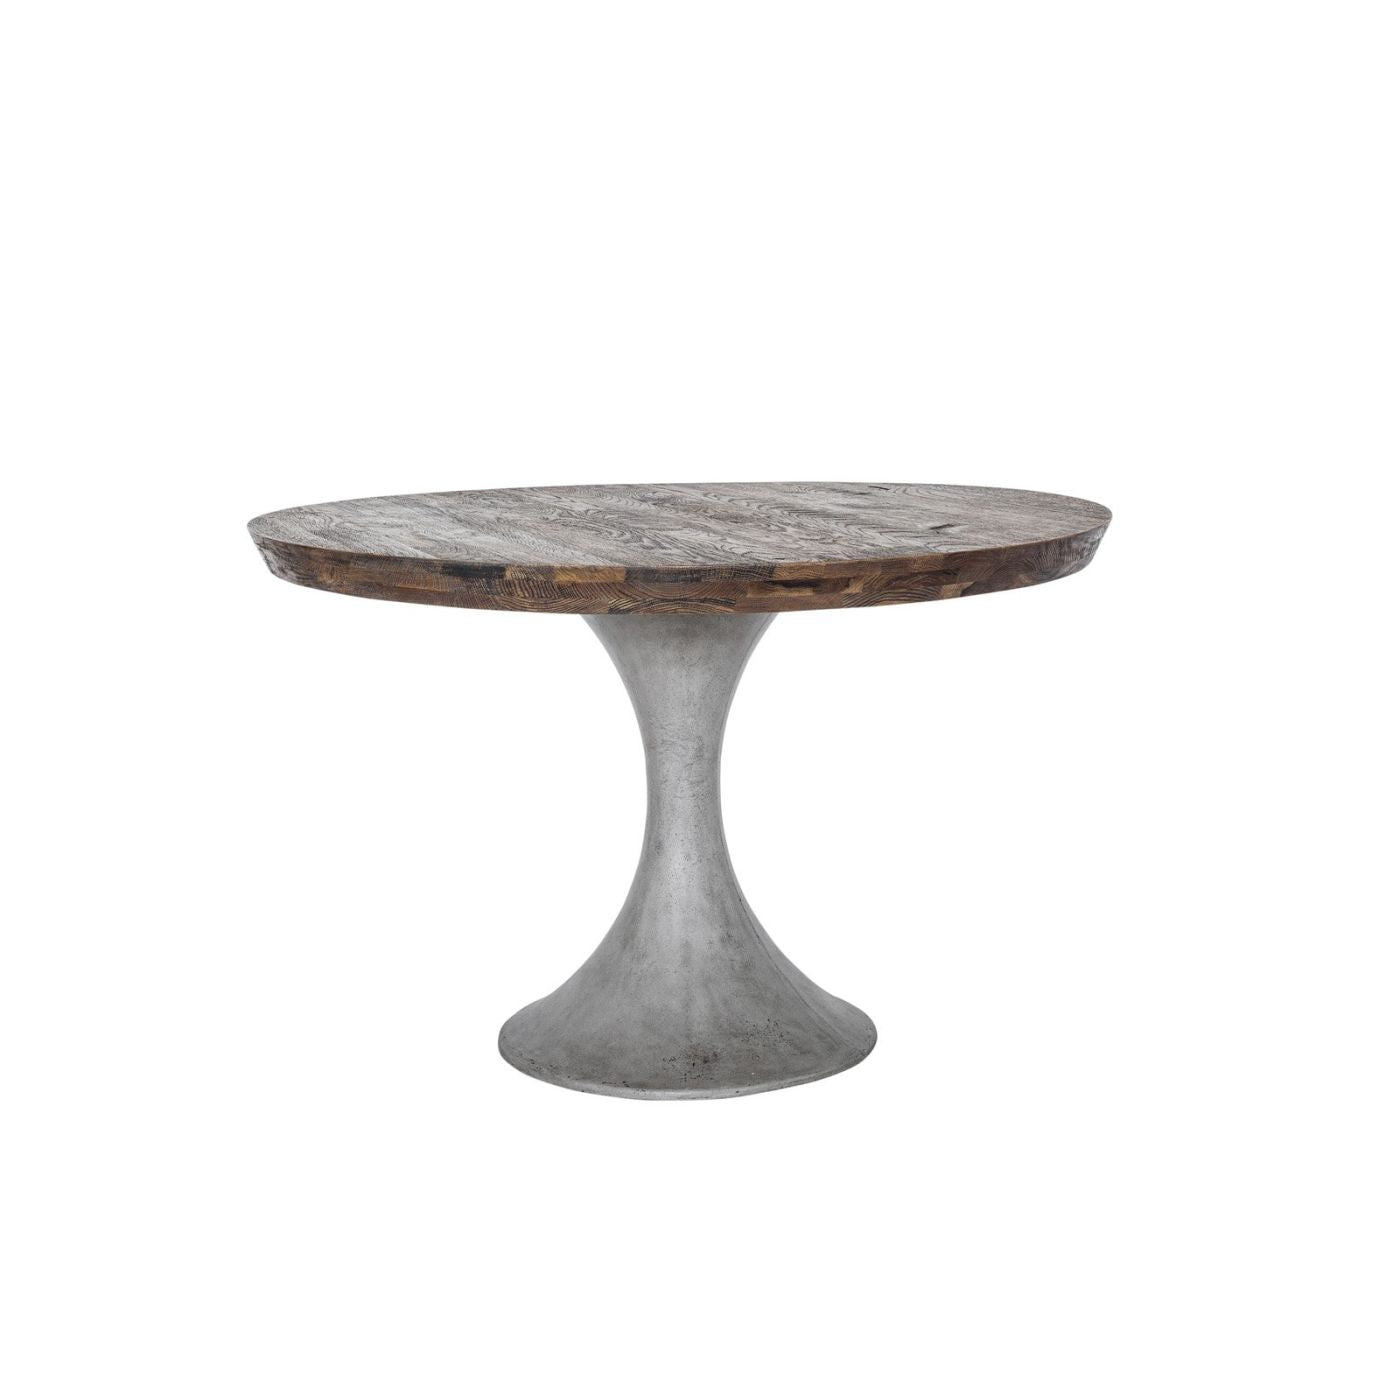 Best Price On Moe S Home Collection Bq 1015 03 Aaron Round Dining Table Solid Oak Concrete 47 5 Only 1 424 00 At Contemporary Furniture